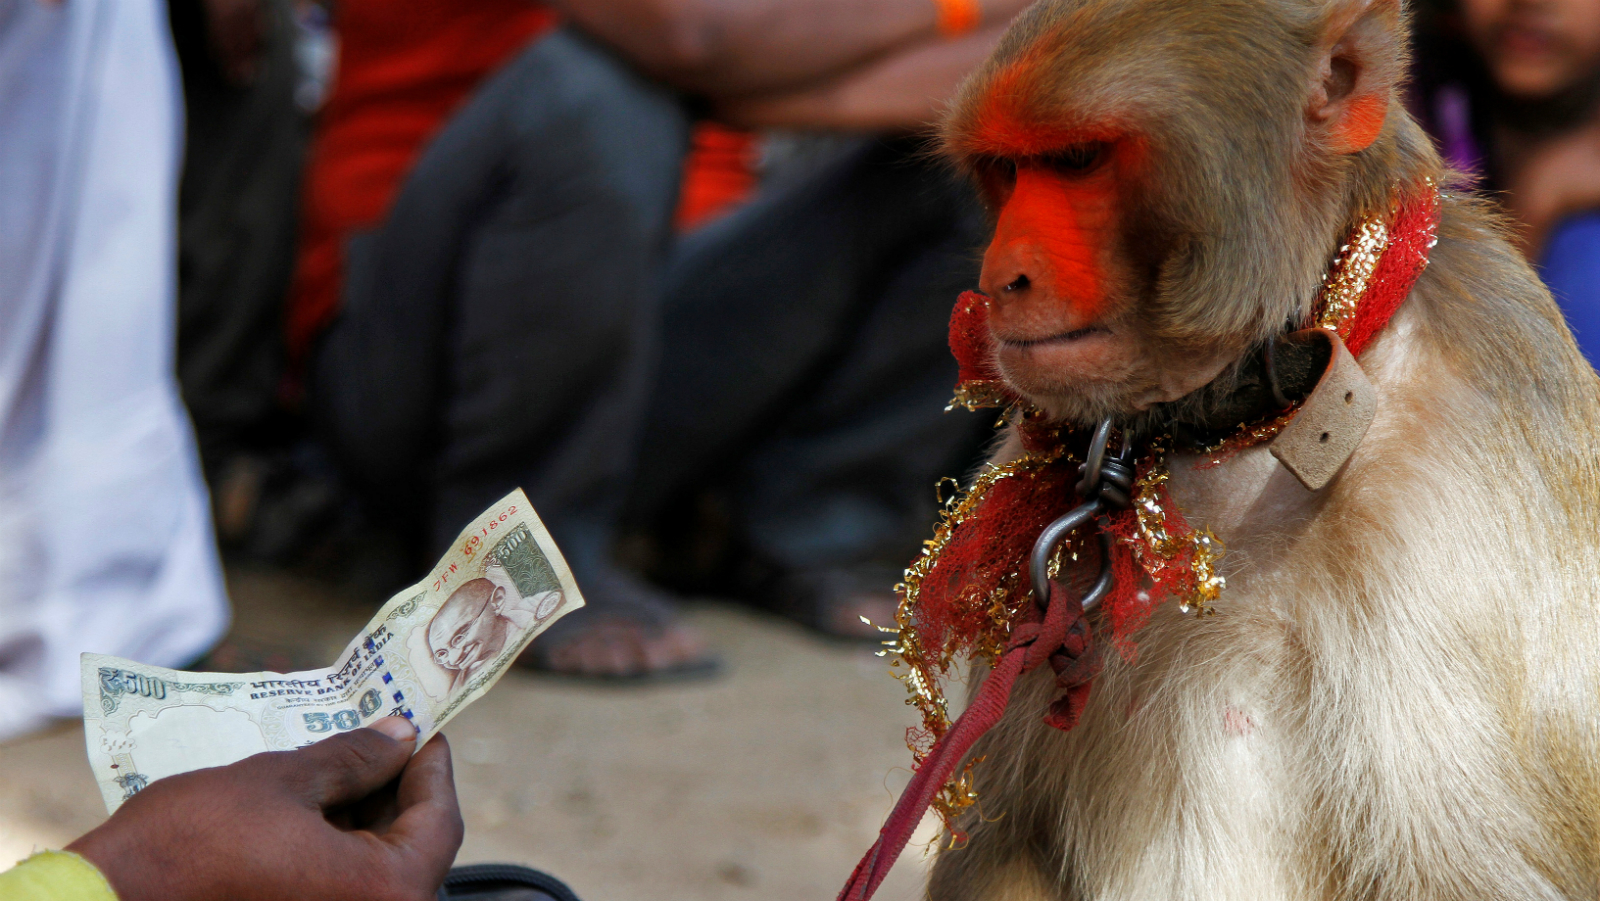 A man with his monkey holds a 500 Indian rupee banknote given by a tourist while performing at Pushkar Fair, where animals mainly camels are brought to be sold and traded in the desert Indian state of Rajasthan, India, November 9, 2016.